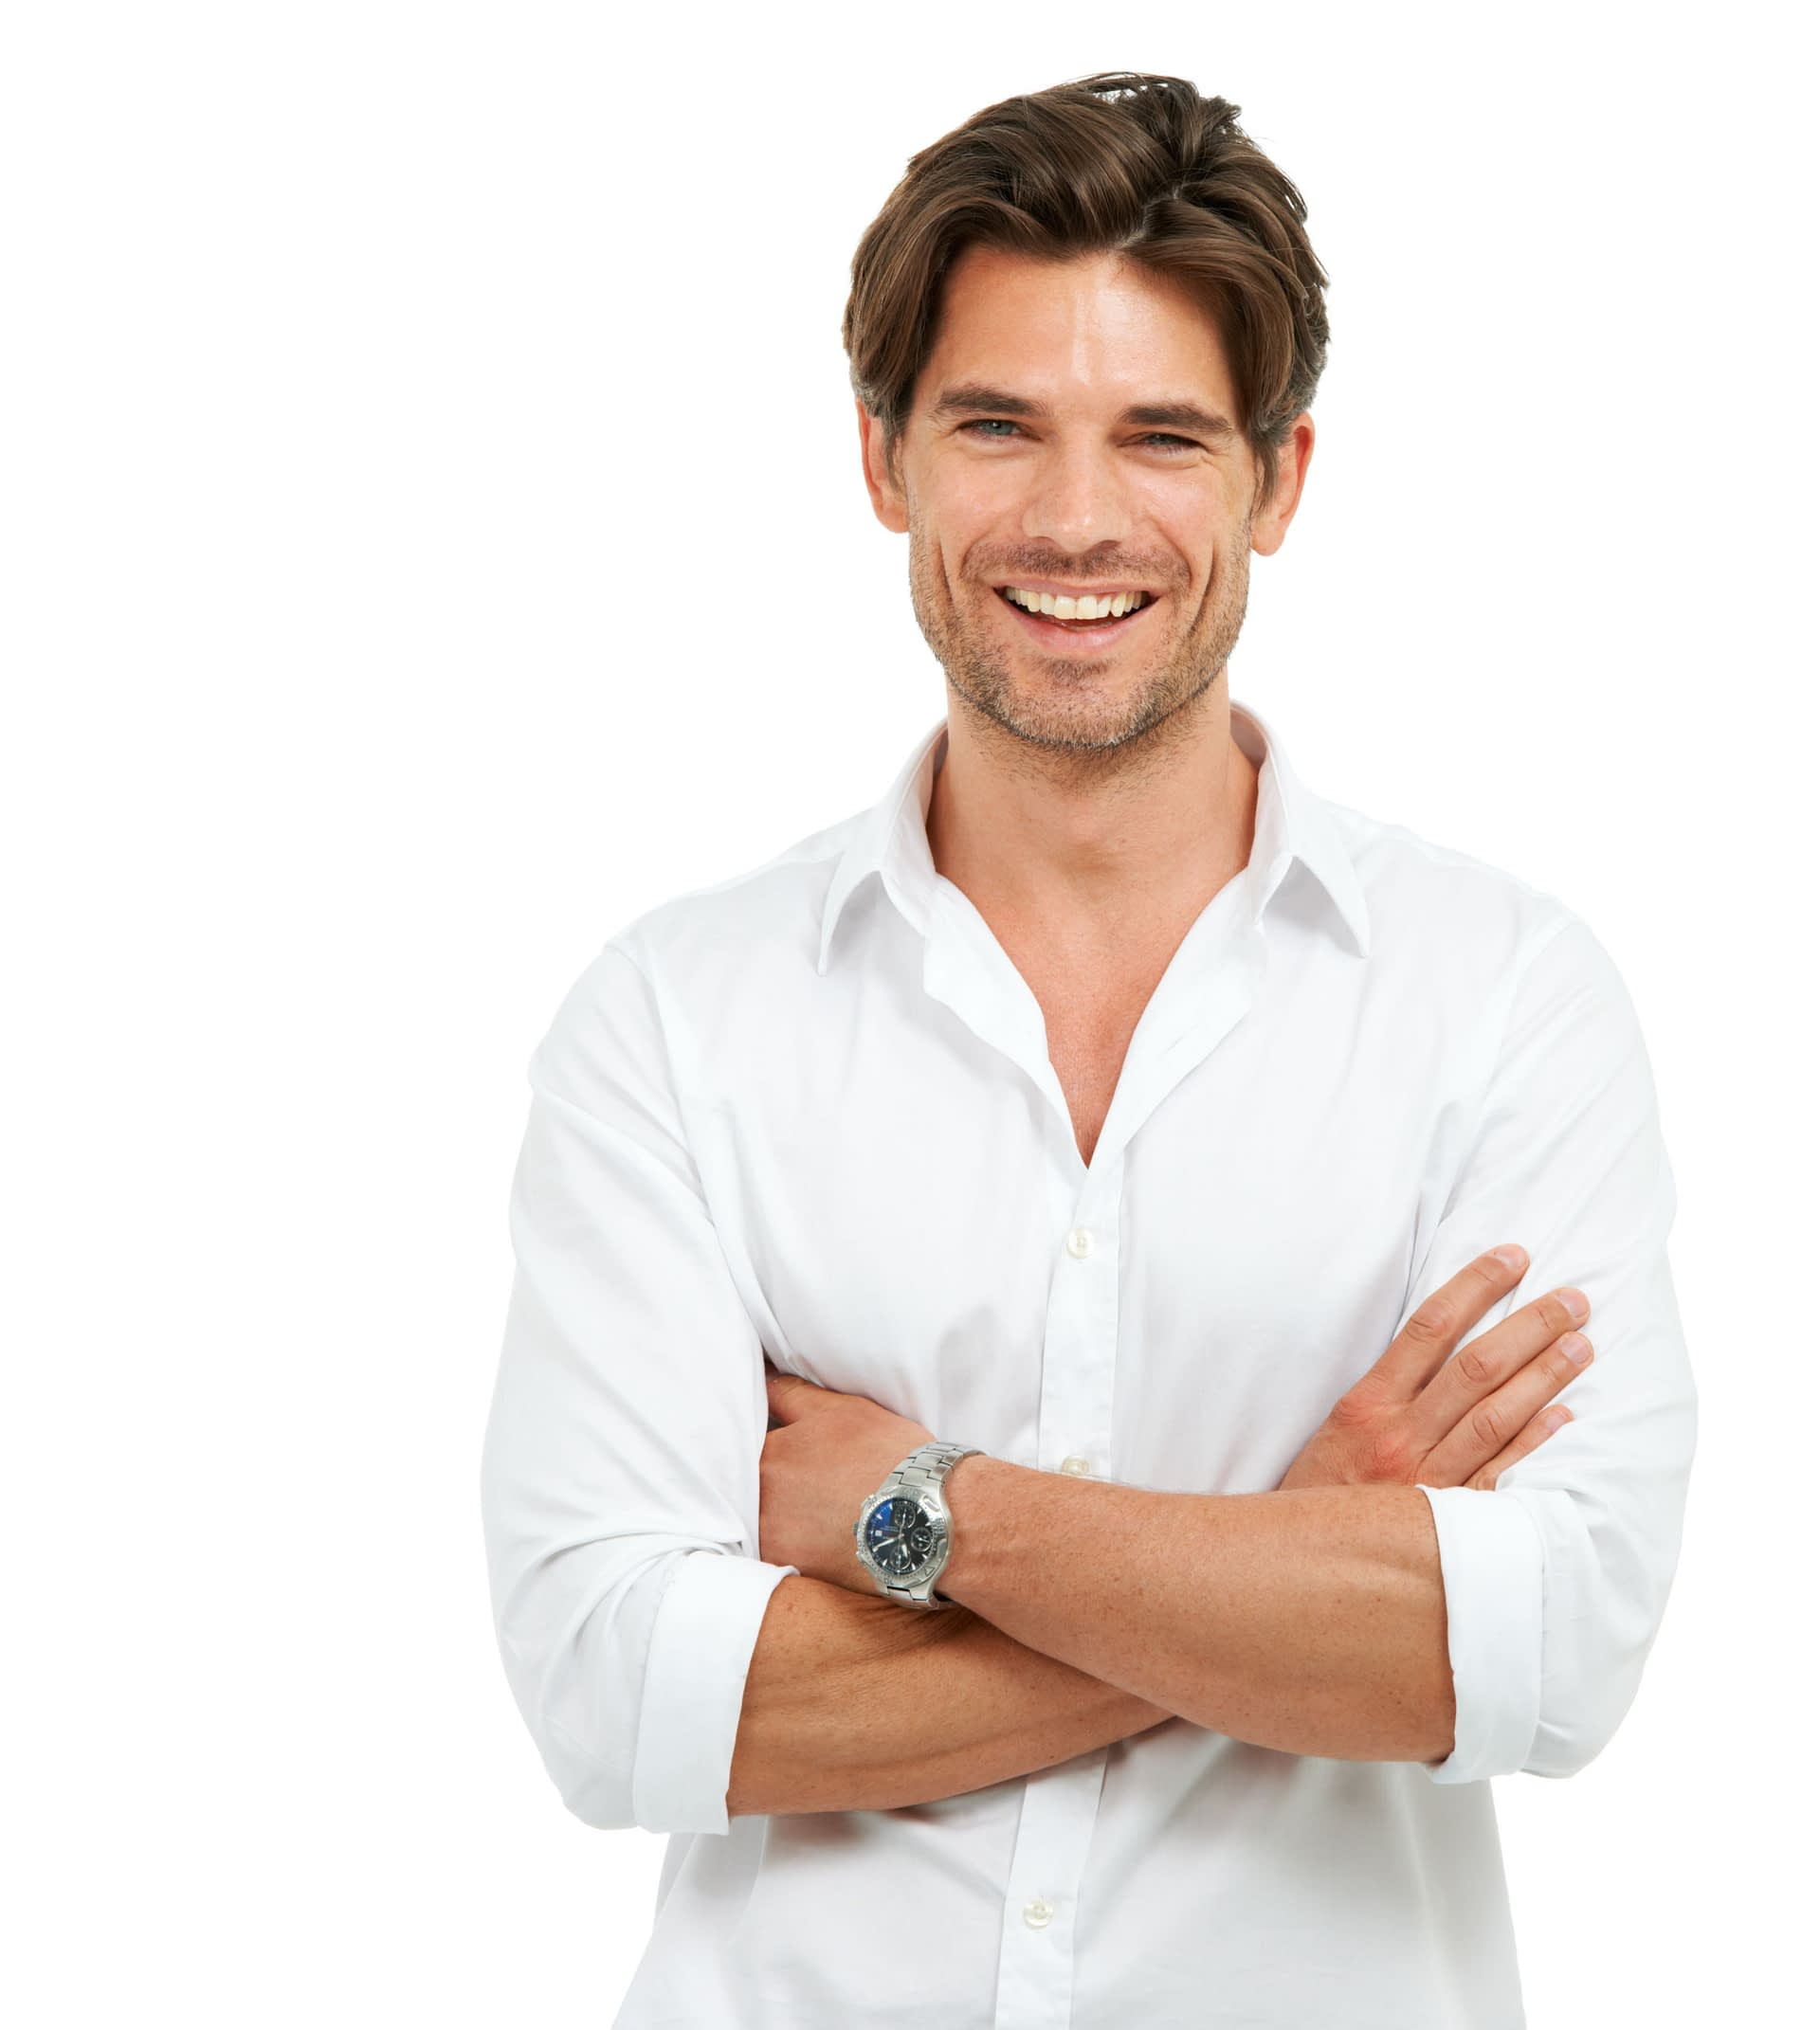 Studio shot of a handsome man standing with his arms crossed and laughing isolated on white